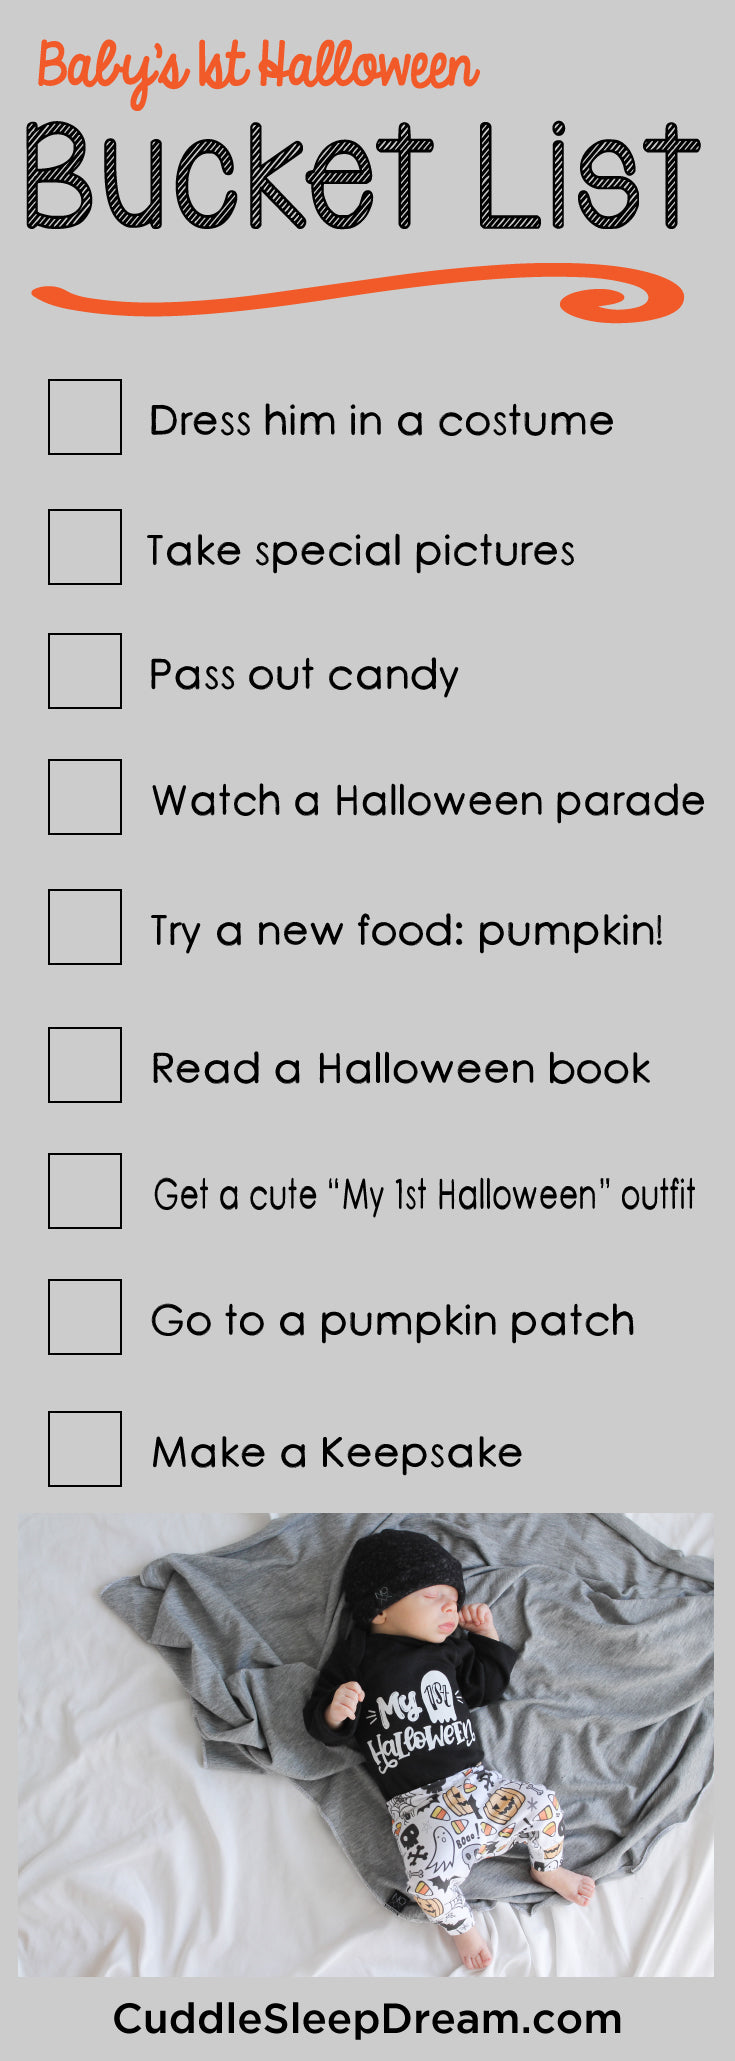 baby's 1st halloween bucket list ideas